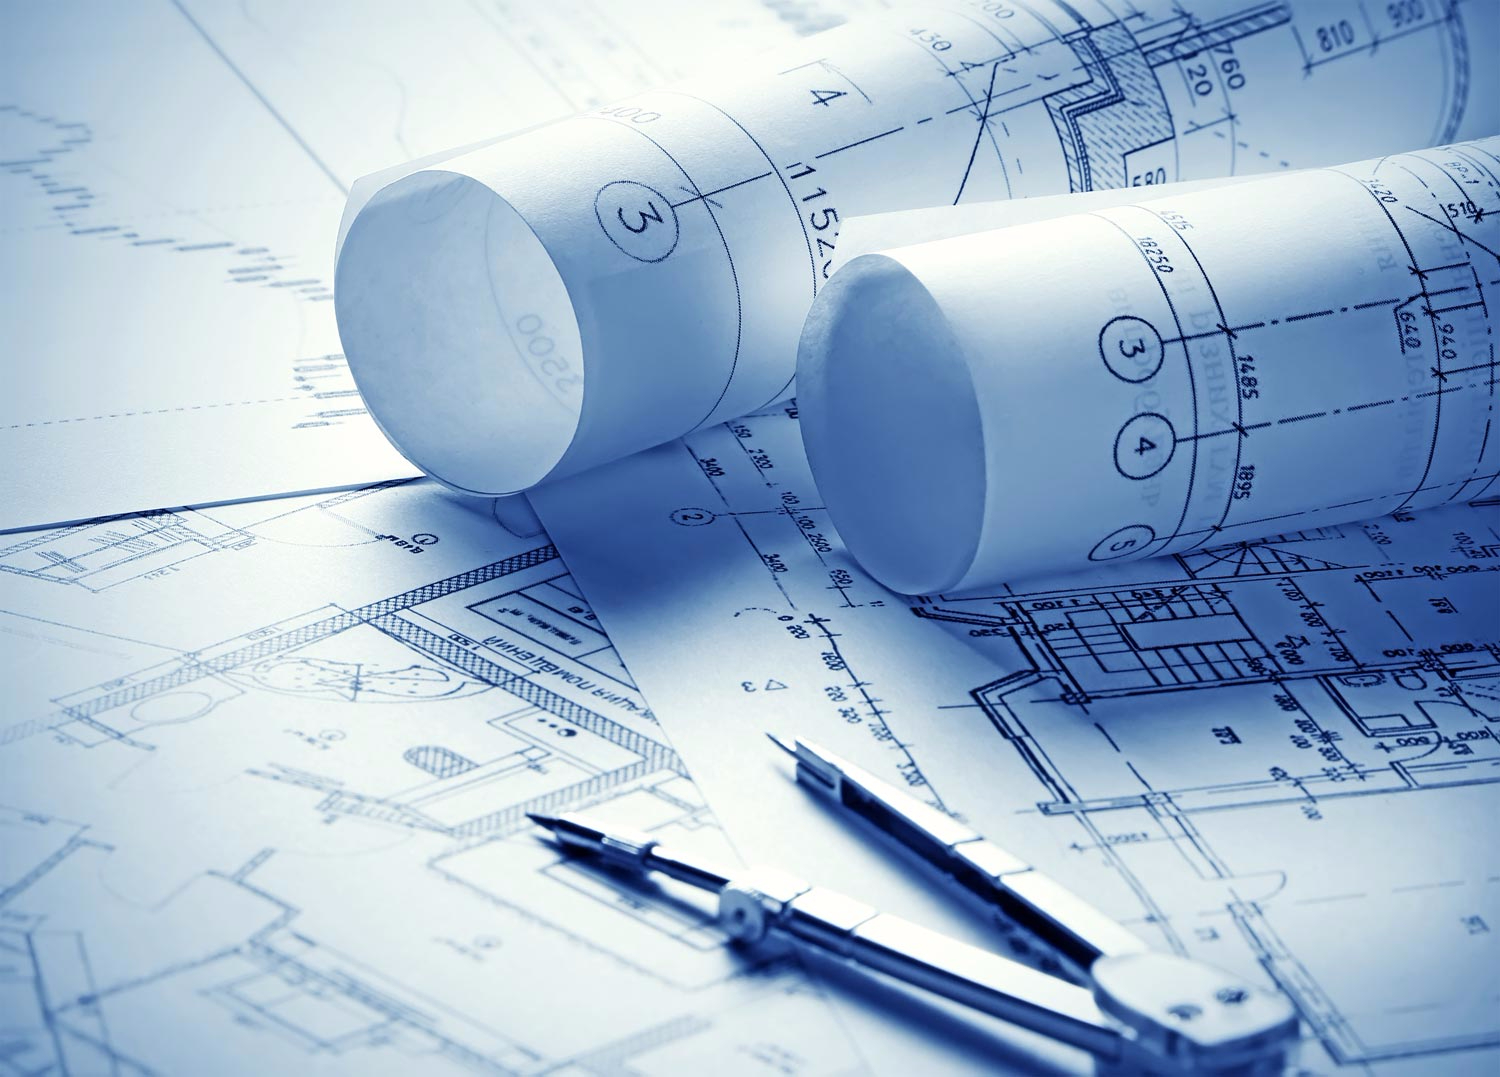 Retirement income blueprints blueprint 2g building income for life malvernweather Gallery